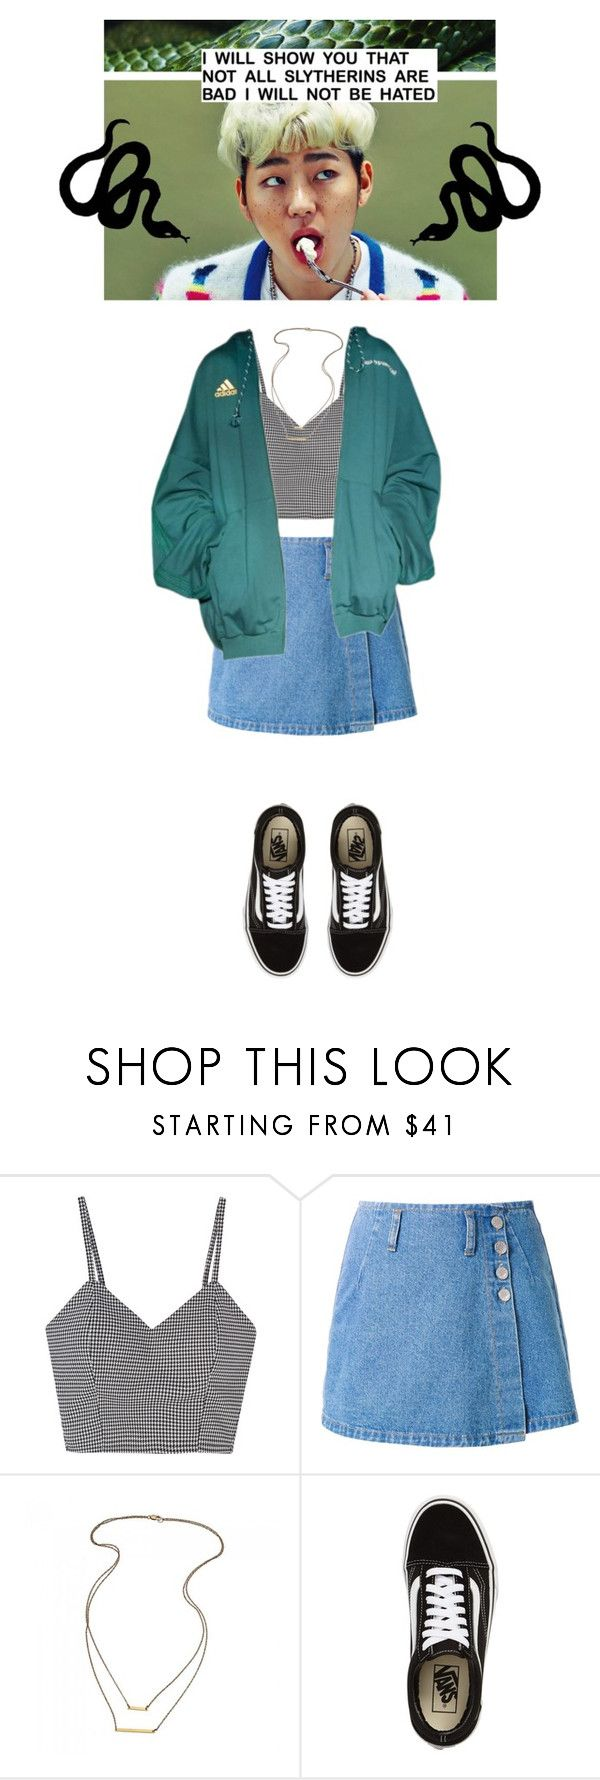 """* S L Y T H E R I N  Z I C O *"" by sydclair ❤ liked on Polyvore featuring UNIF, Gosha Rubchinskiy, Vans, harrypotter, slytherin, kpop, Zico and khiphop"